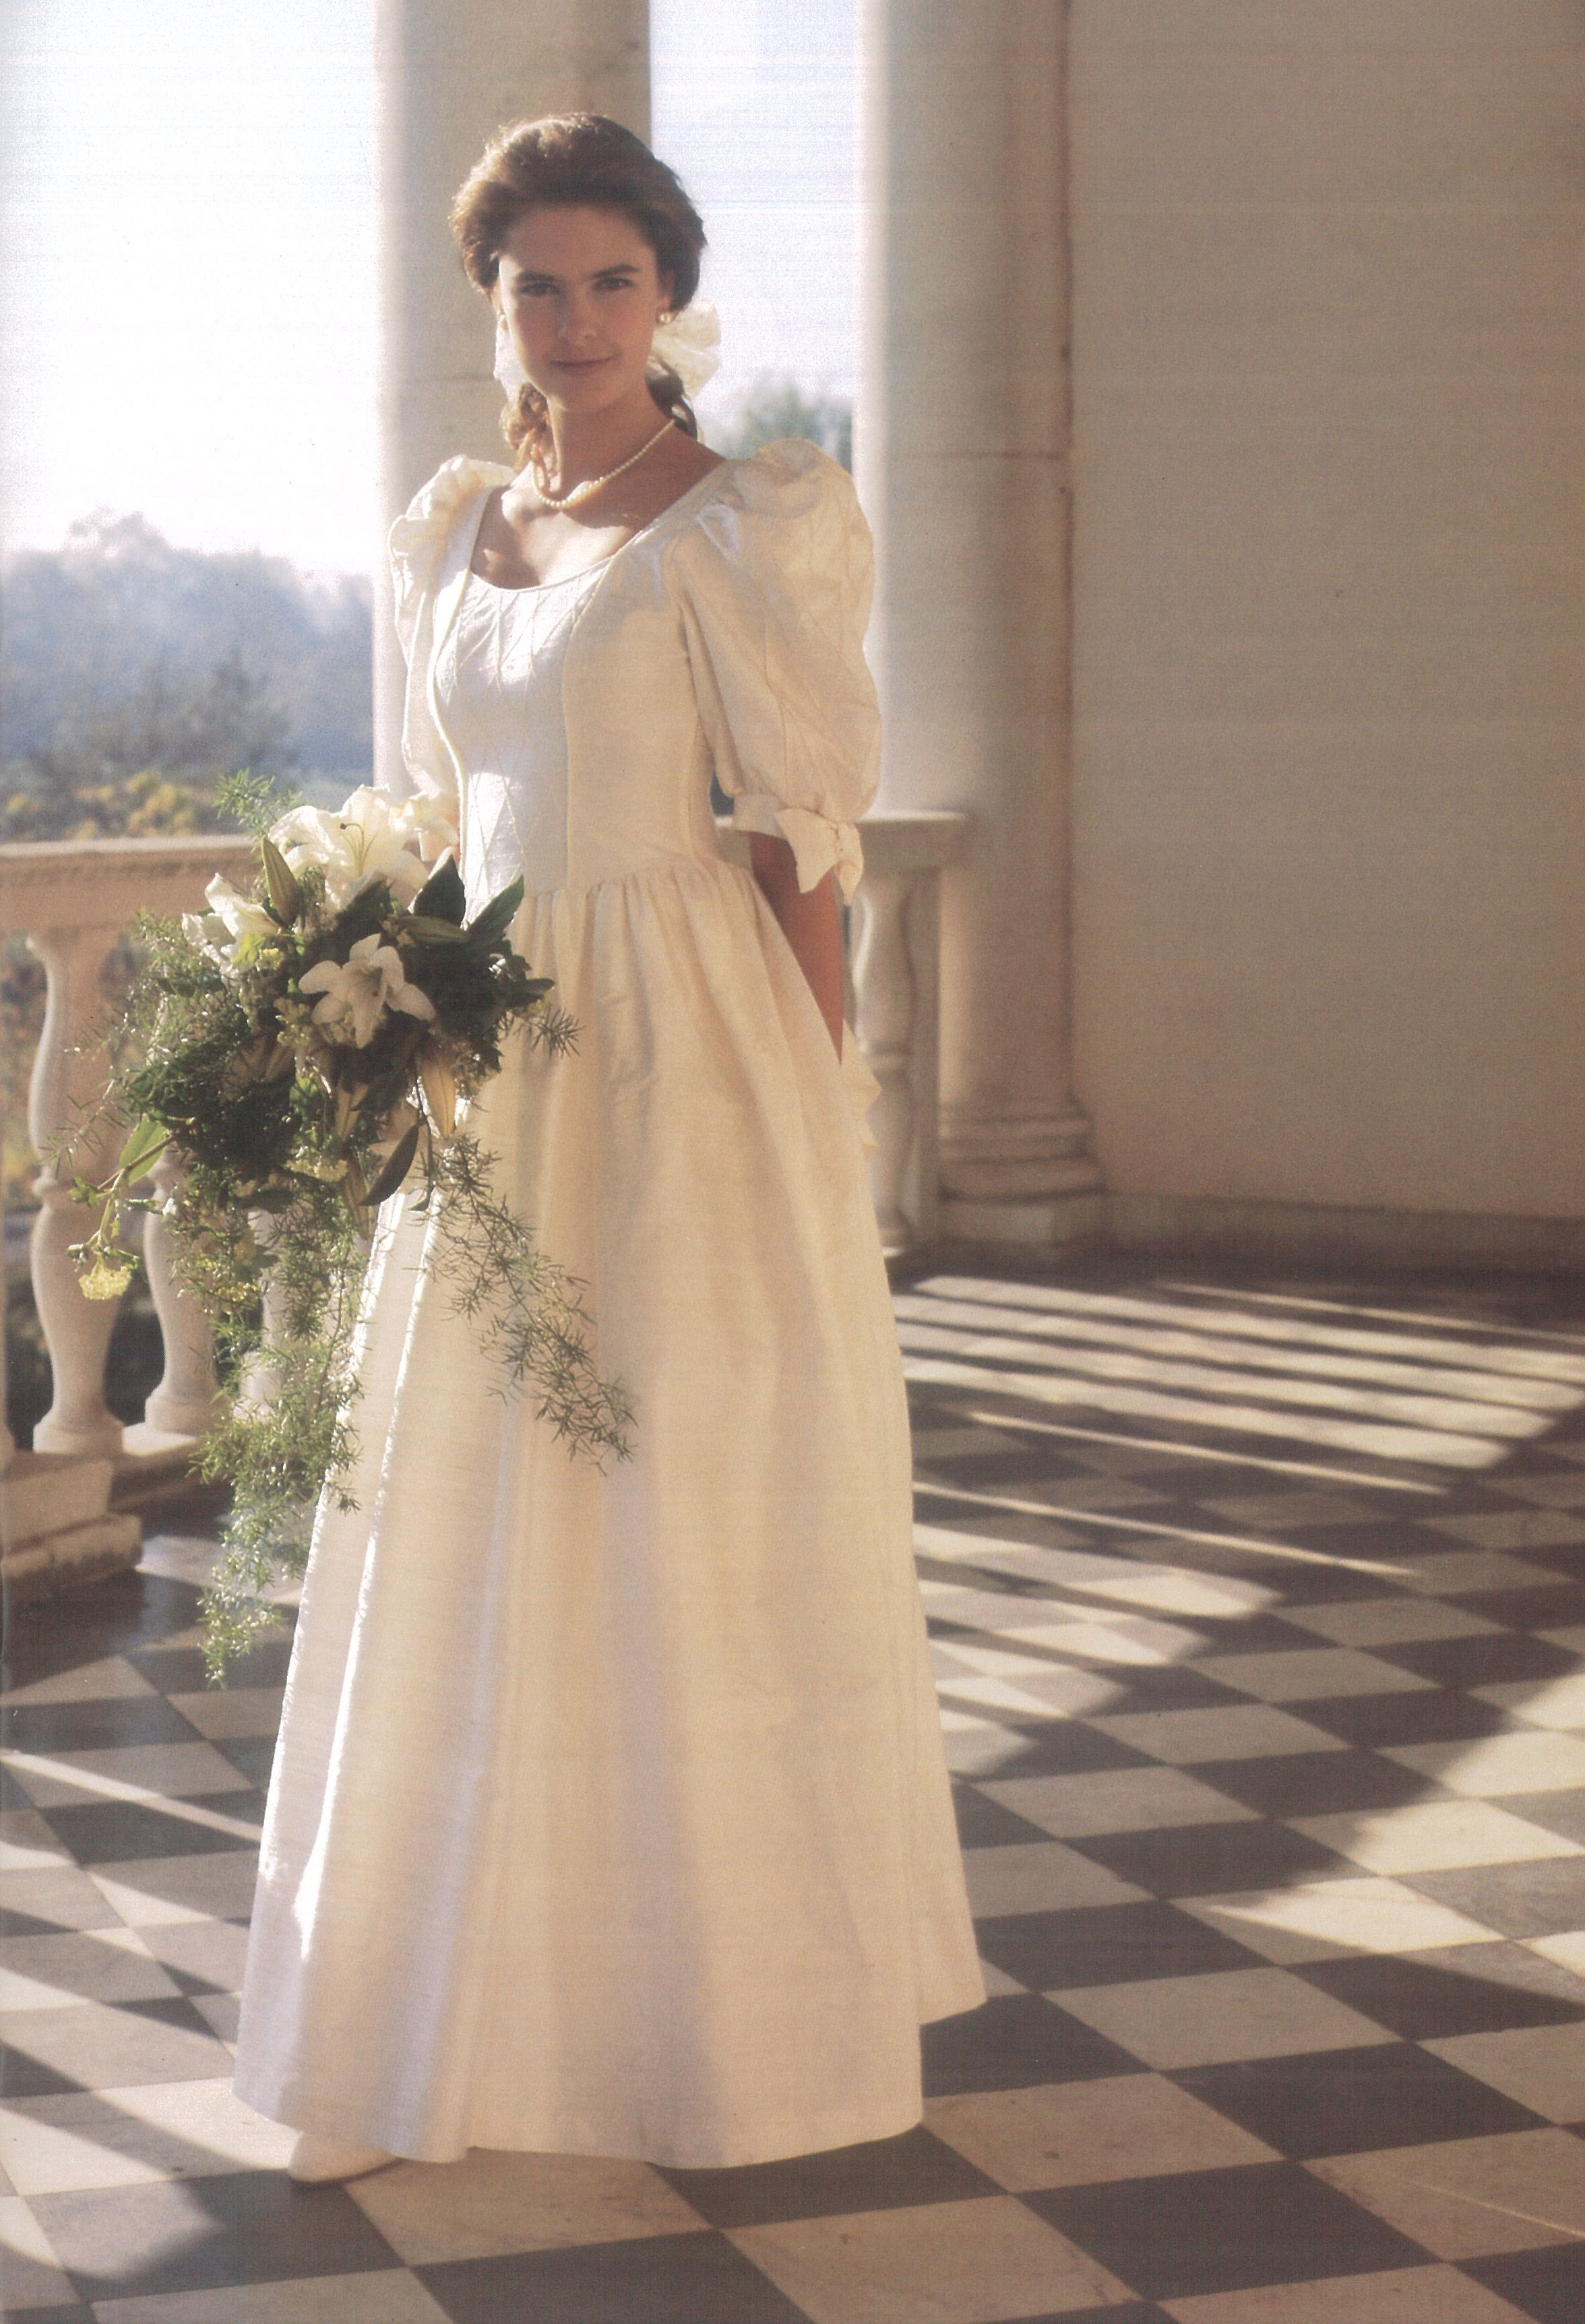 Such A Classic How Many Of You Recognise This 90s Wedding Dress Lauraashley60 Laura Ashley Wedding Dress Wedding Dresses 90s Wedding Dress